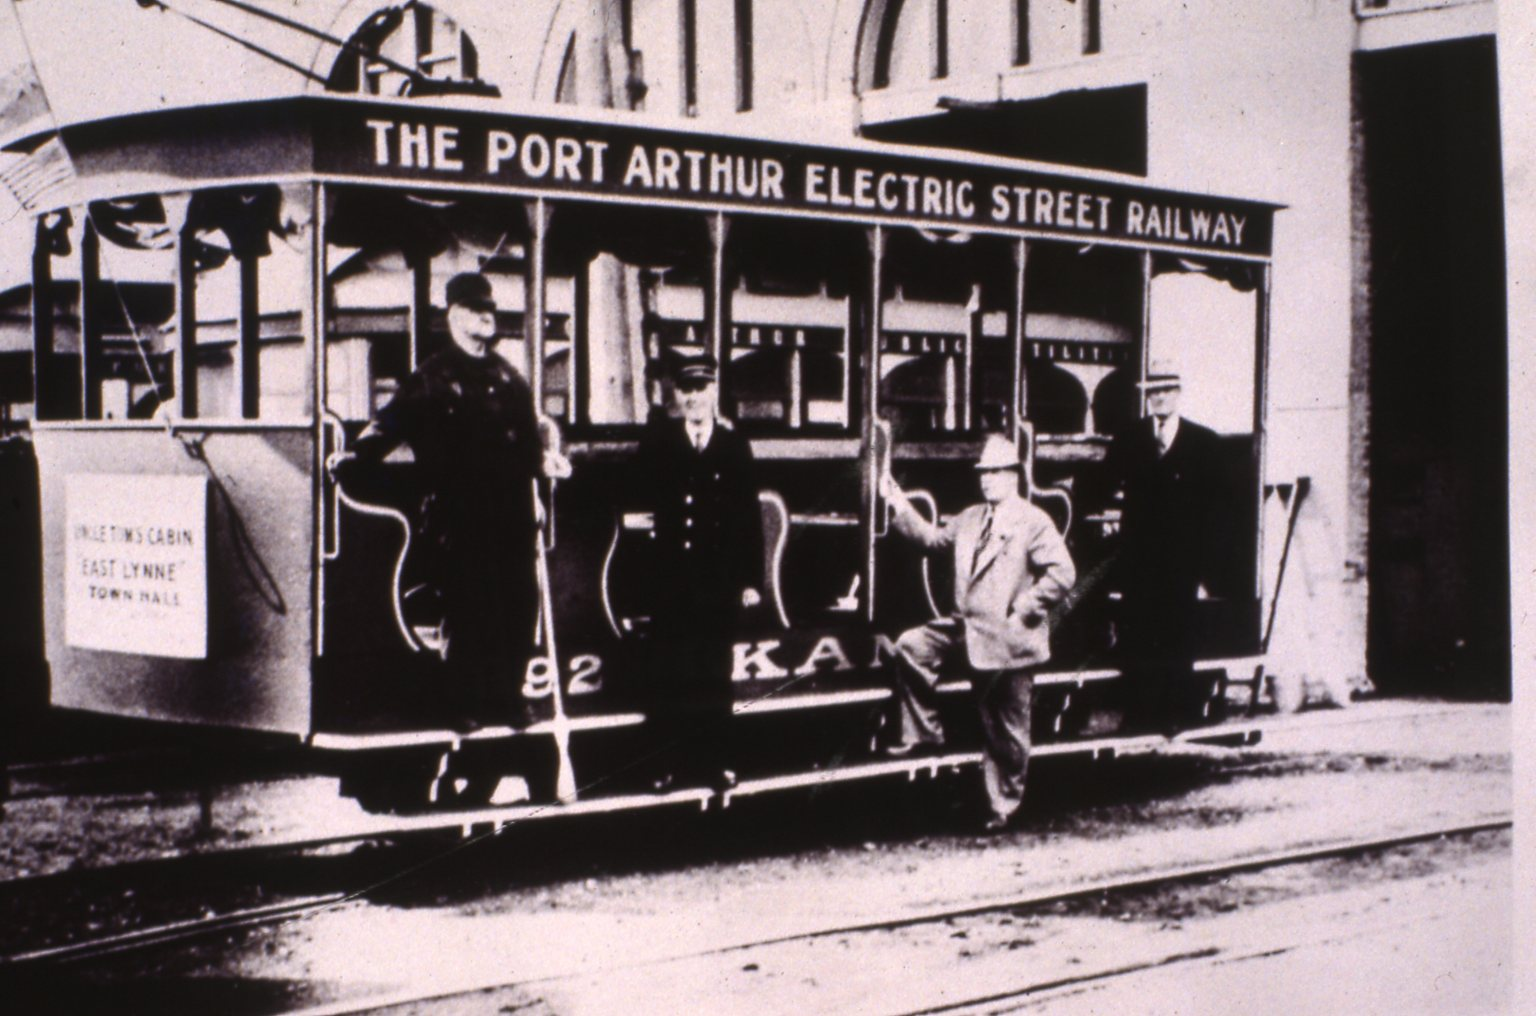 an electric railway car carrying multiple people